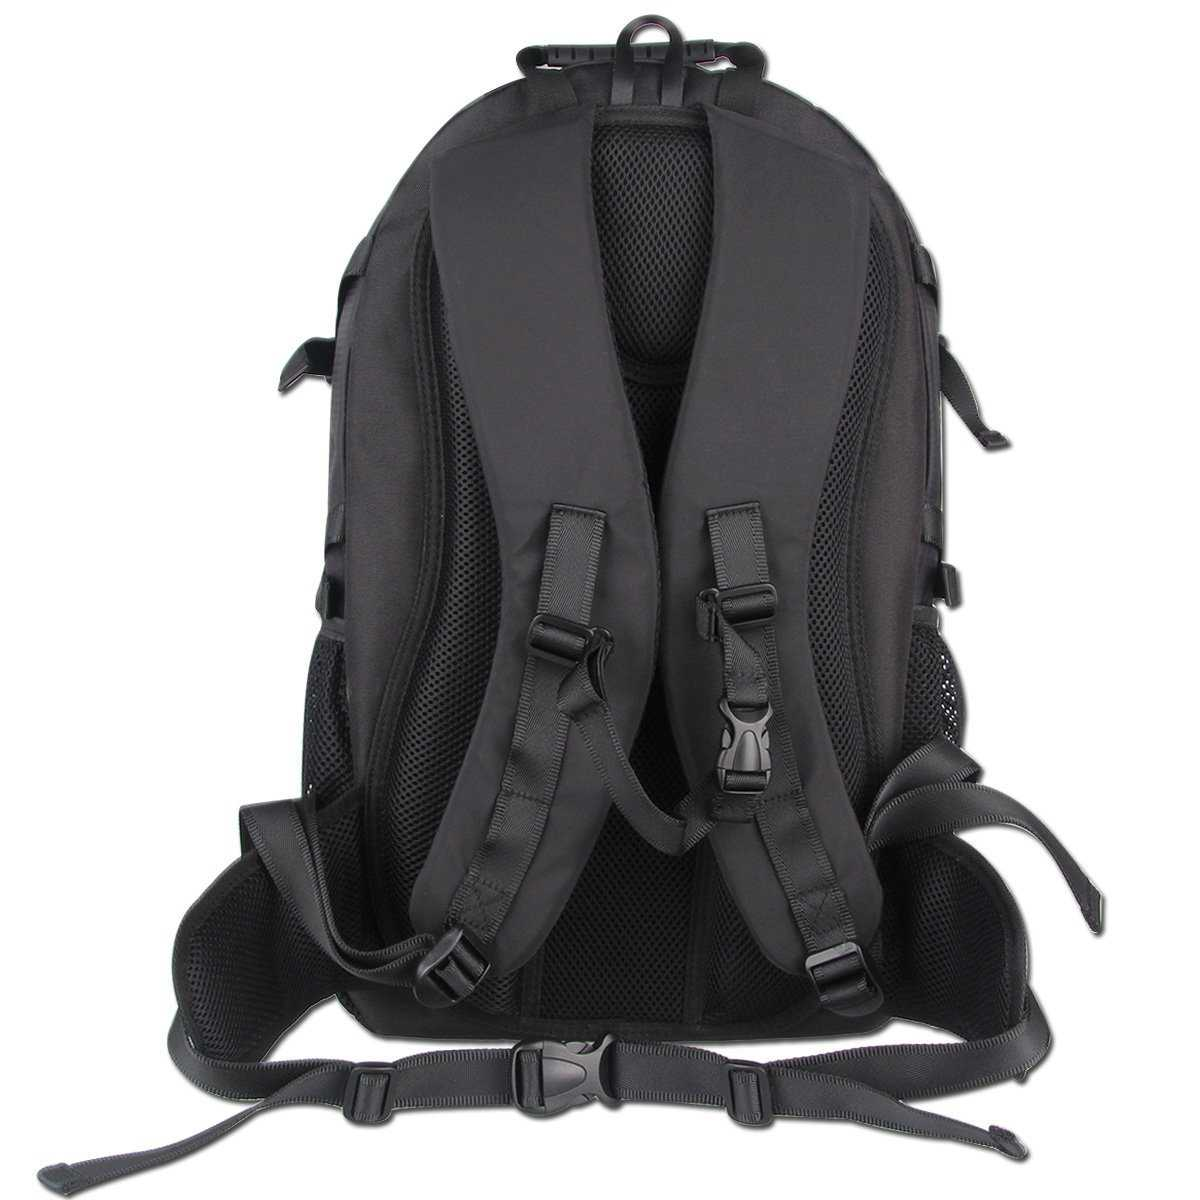 Stoc Nylon Outdoor Backpack